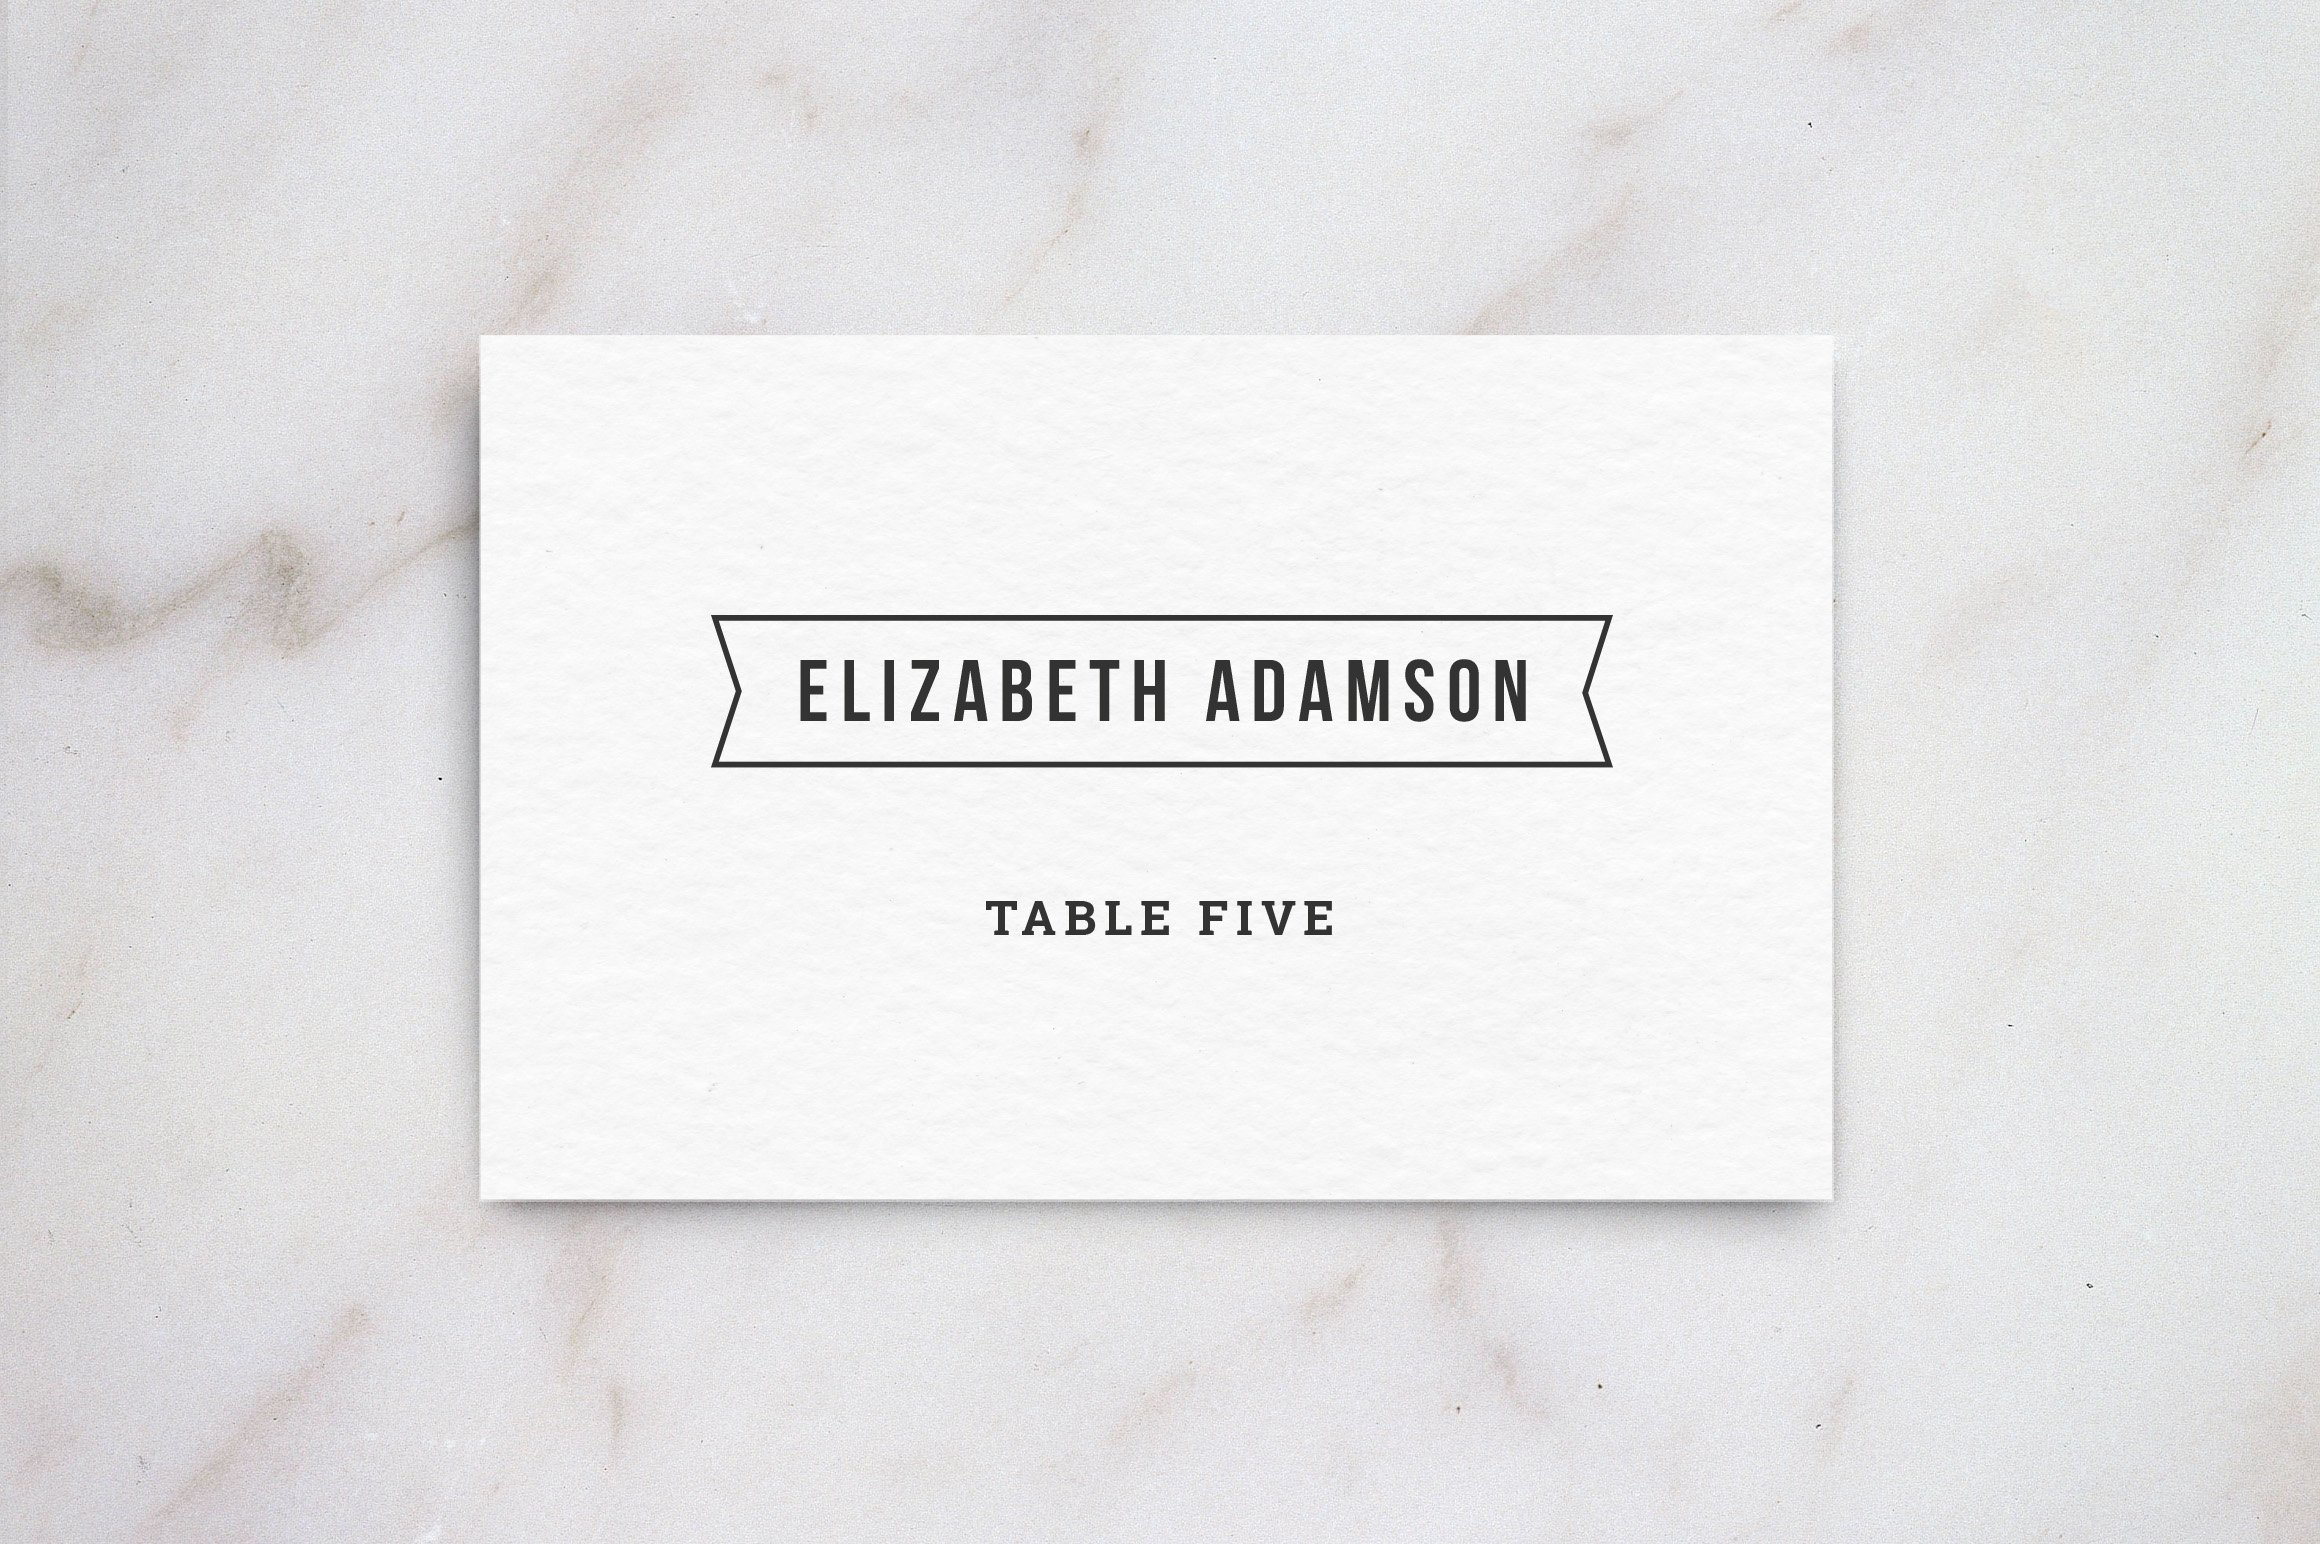 wedding table place card template card templates creative market - Printed Wedding Place Cards